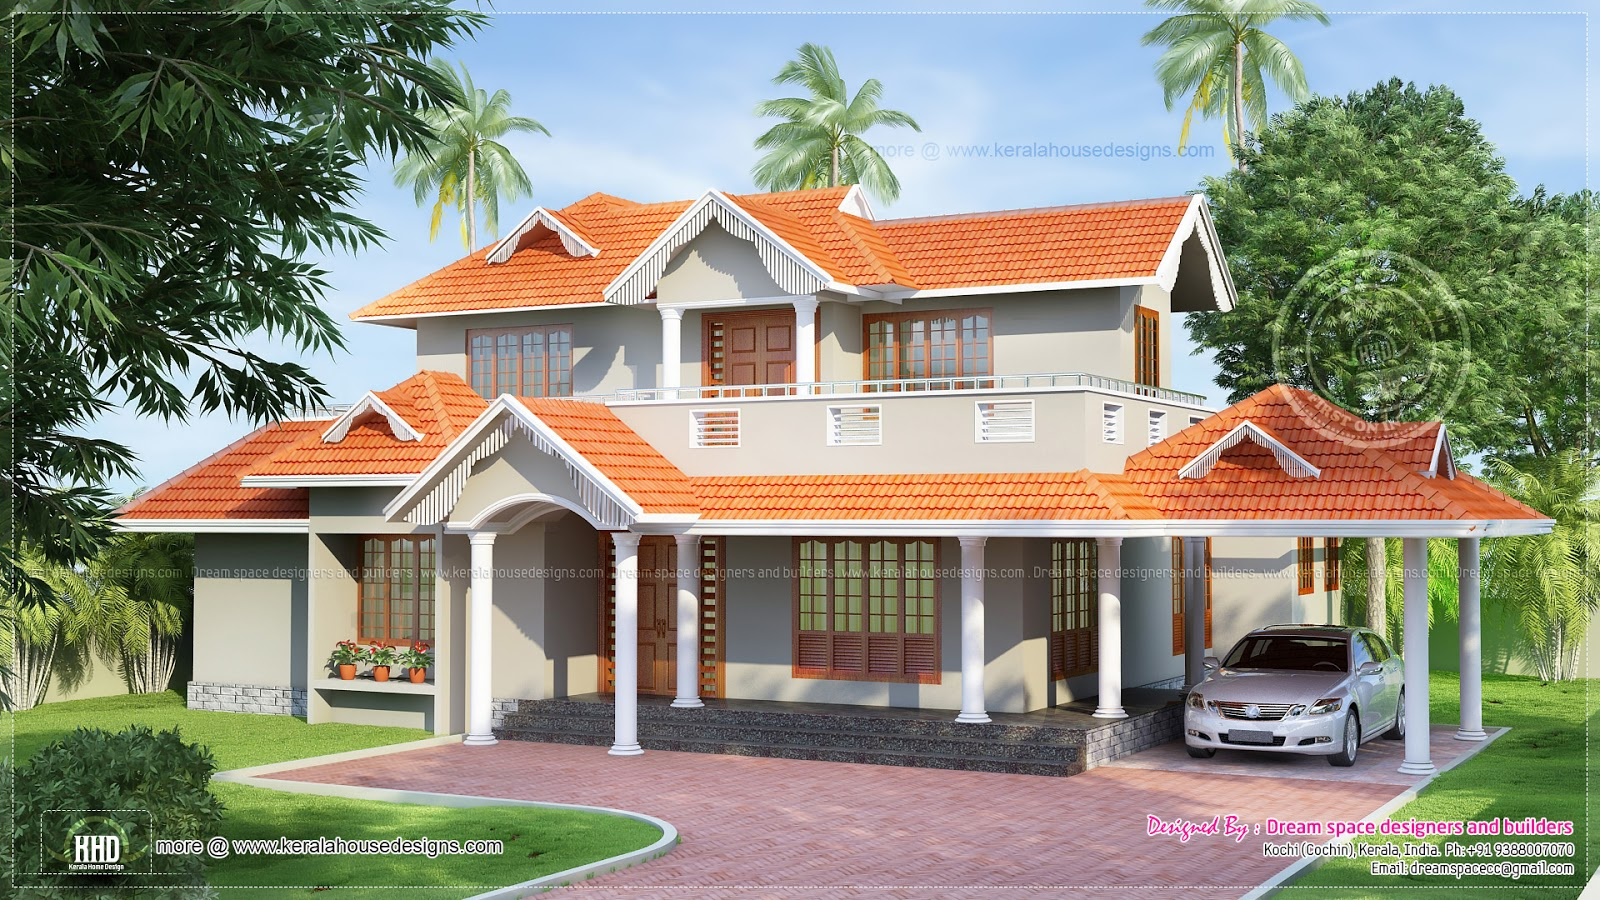 Slopping style tiles roof house in 2300 kerala for Terrace roof design india